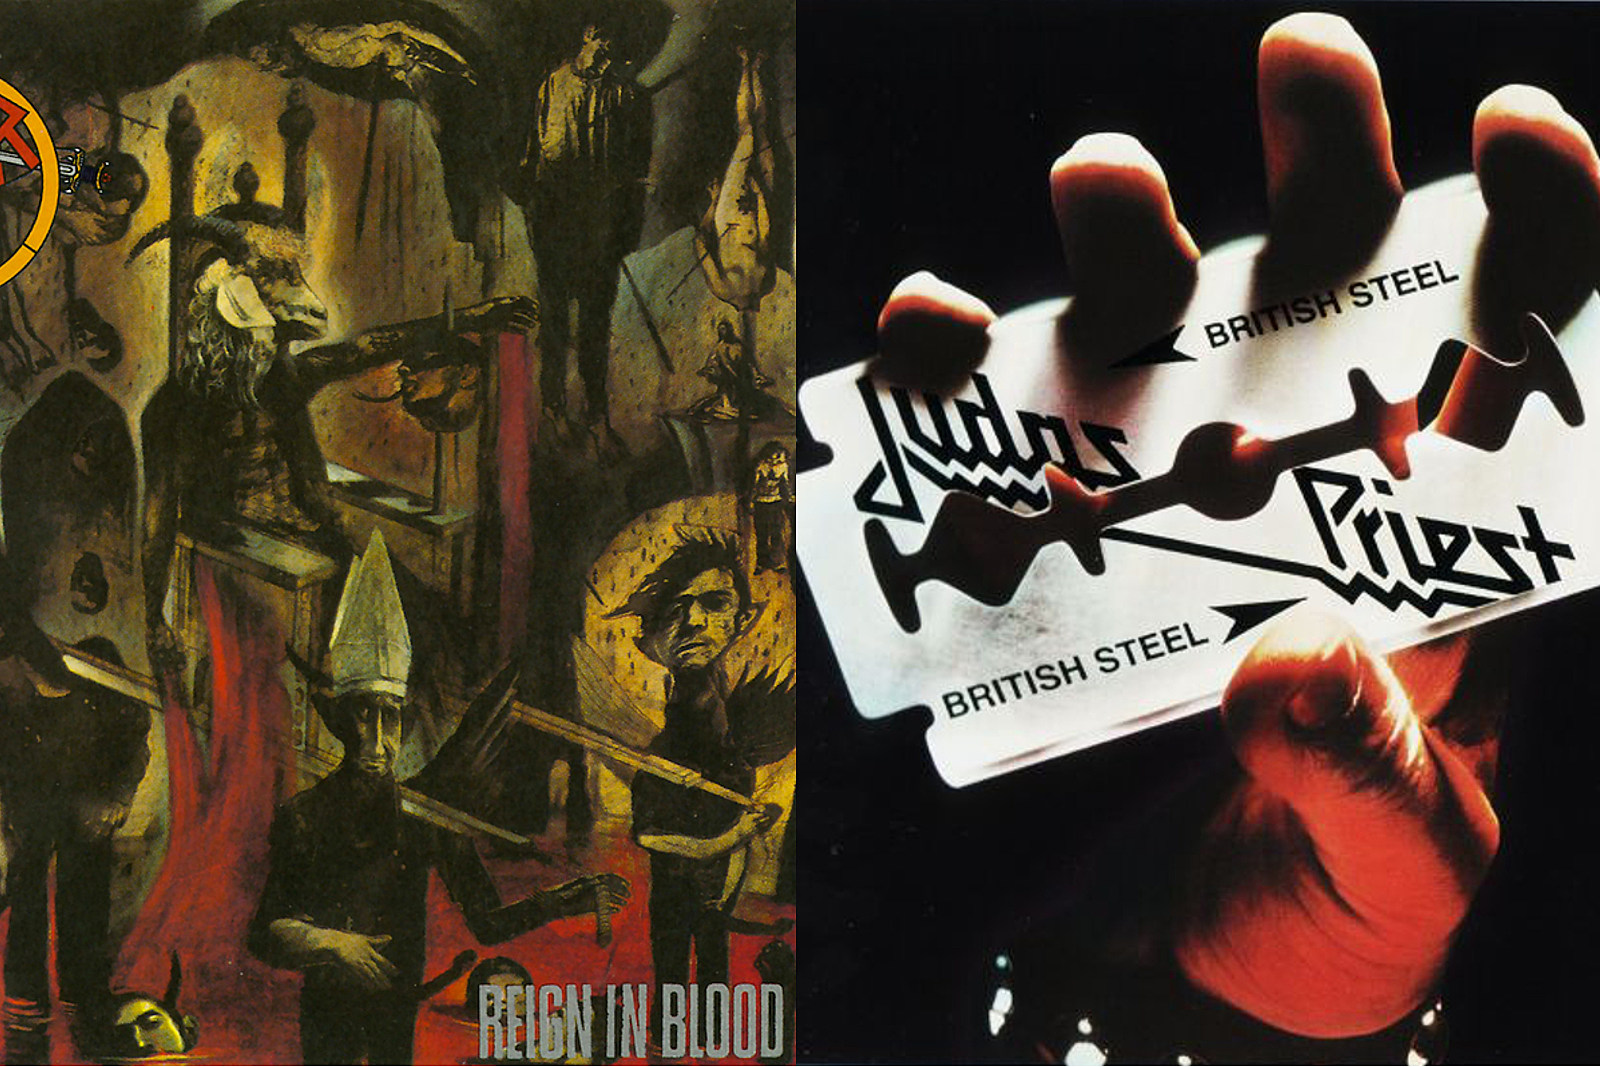 Artists Behind Iconic Judas Priest, Slayer Album Covers Both Die